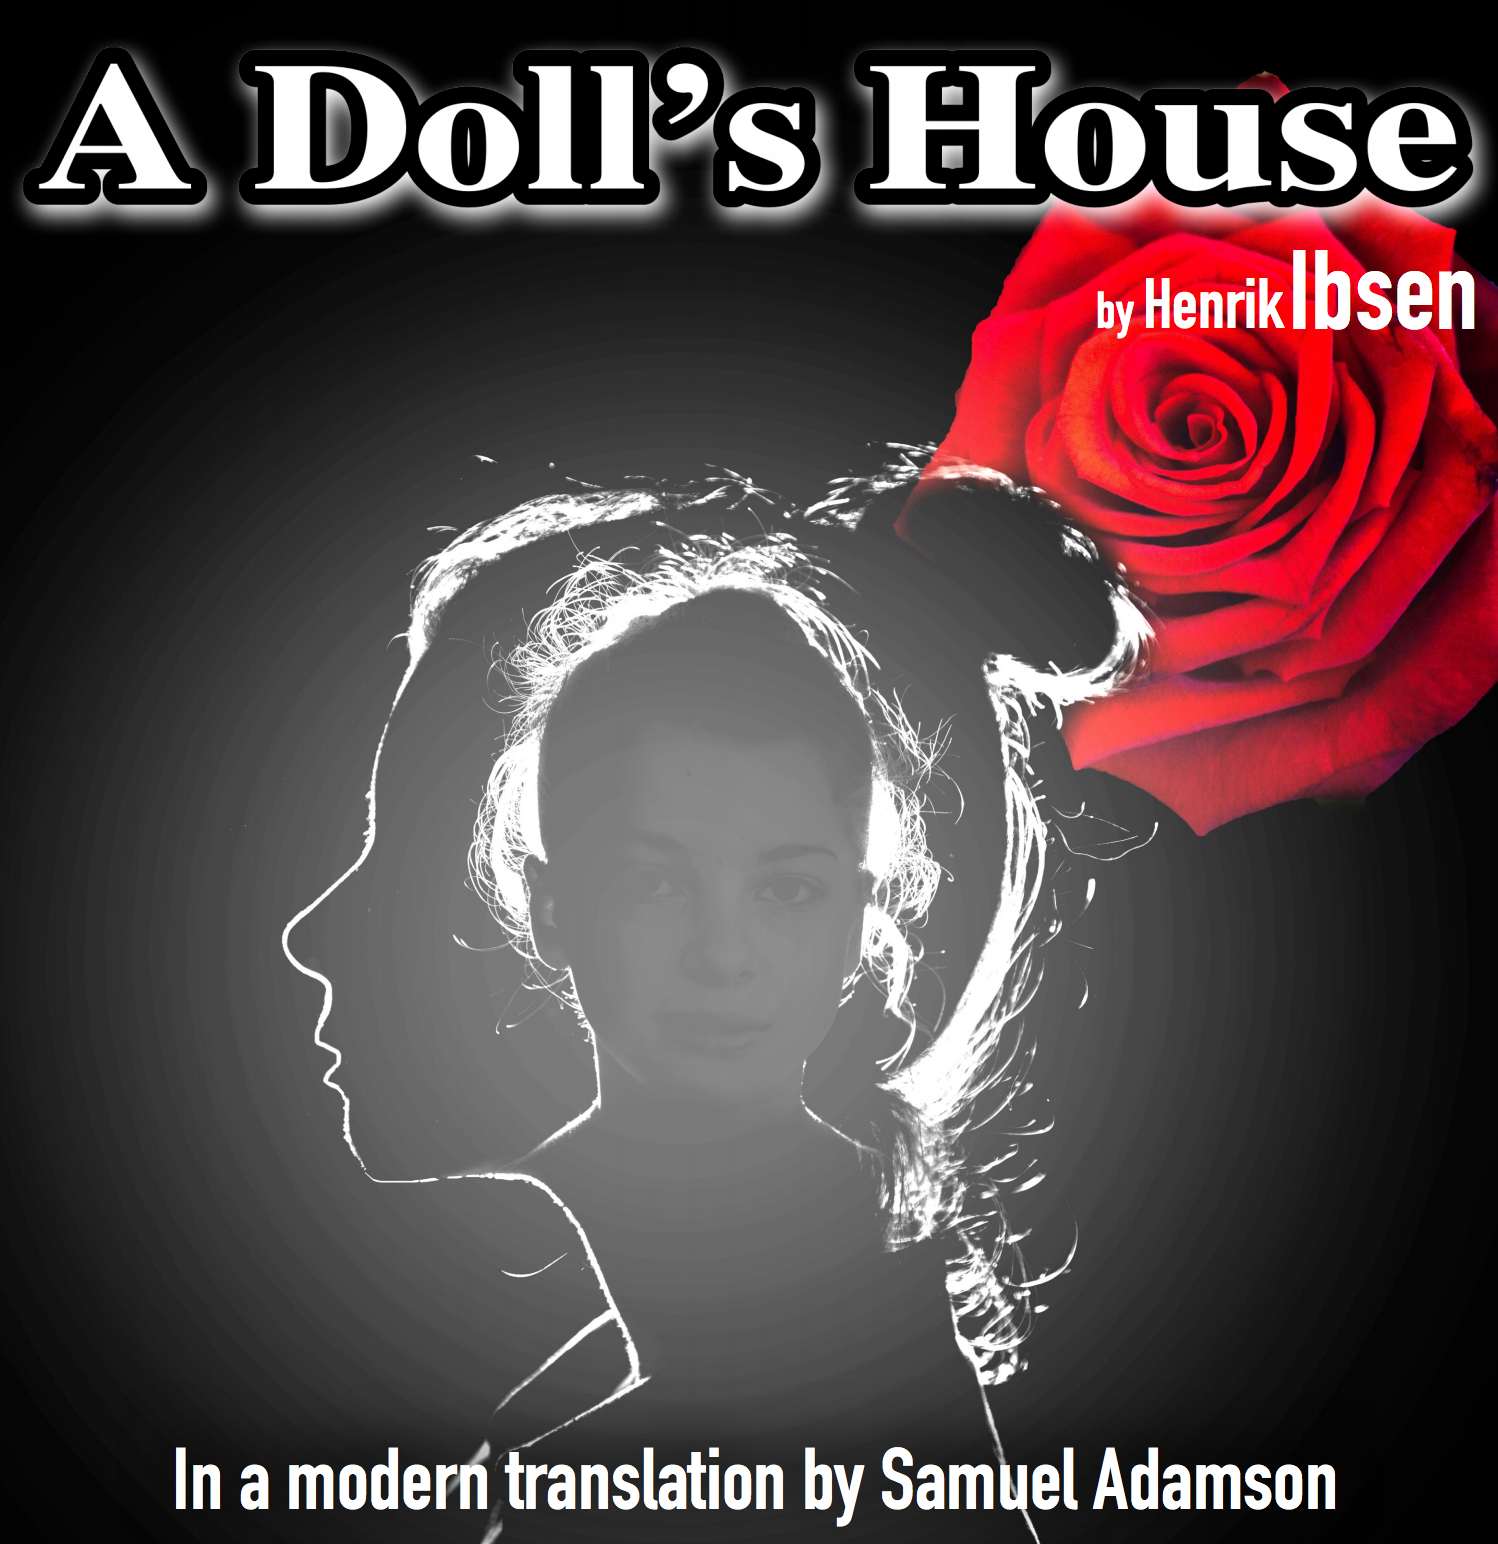 a doll s house nora s quest for Similarly, a doll's house had shocked the 19th century audience nora's decision to leave her husband and children to discover her identity was almost heretic, given the marriage norms of that time in the west.